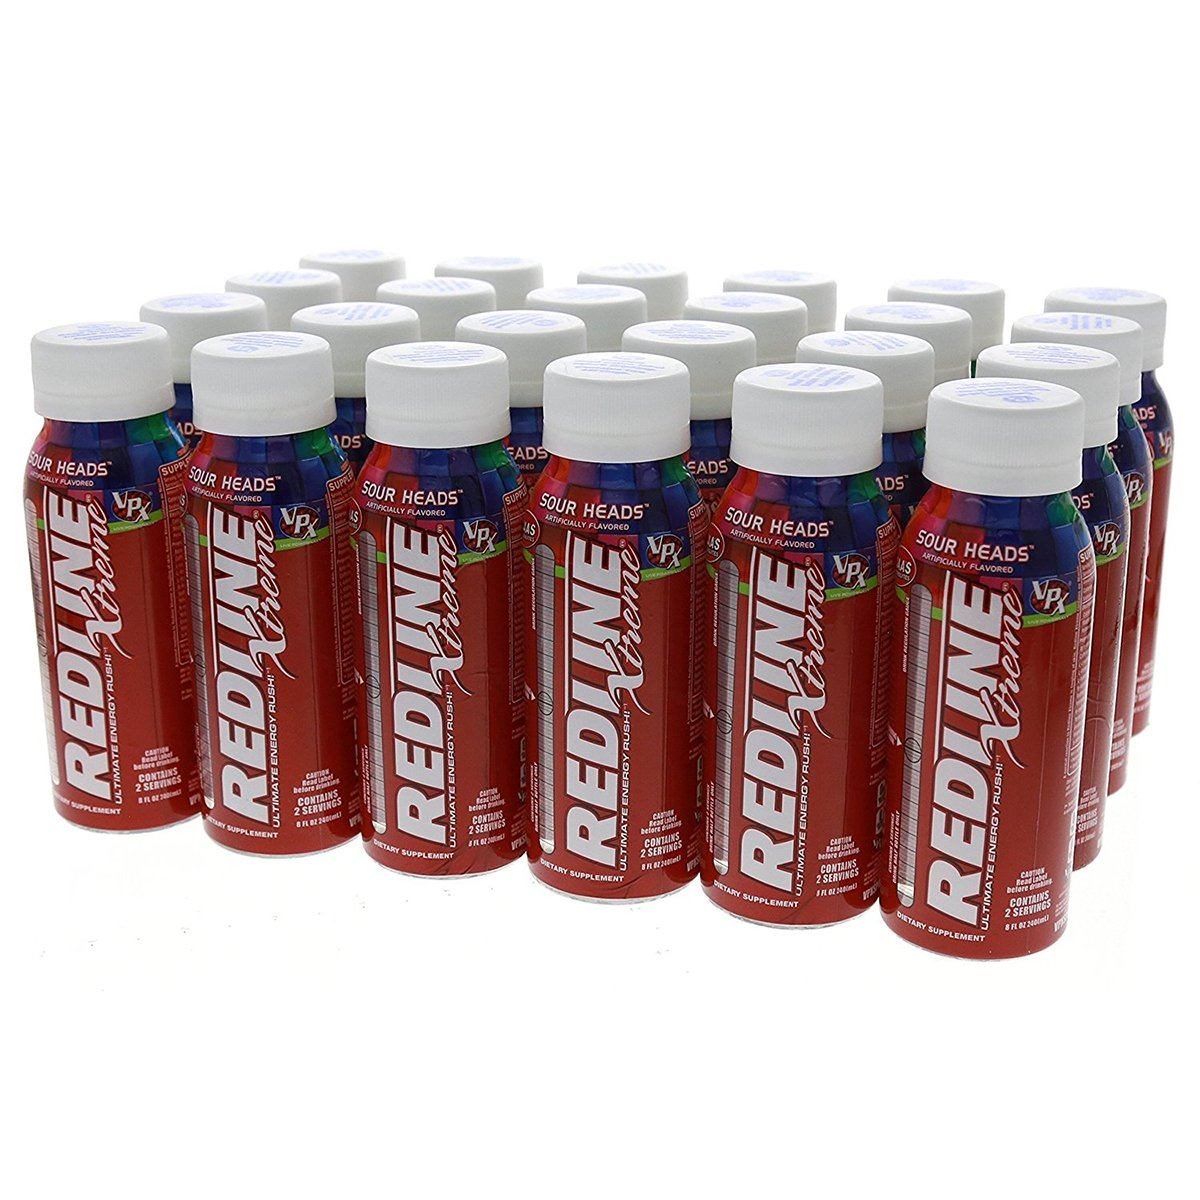 VPX Redline Extreme RTD 24/Case Diet/Energy VPX Sour Heads  (1058083700779)